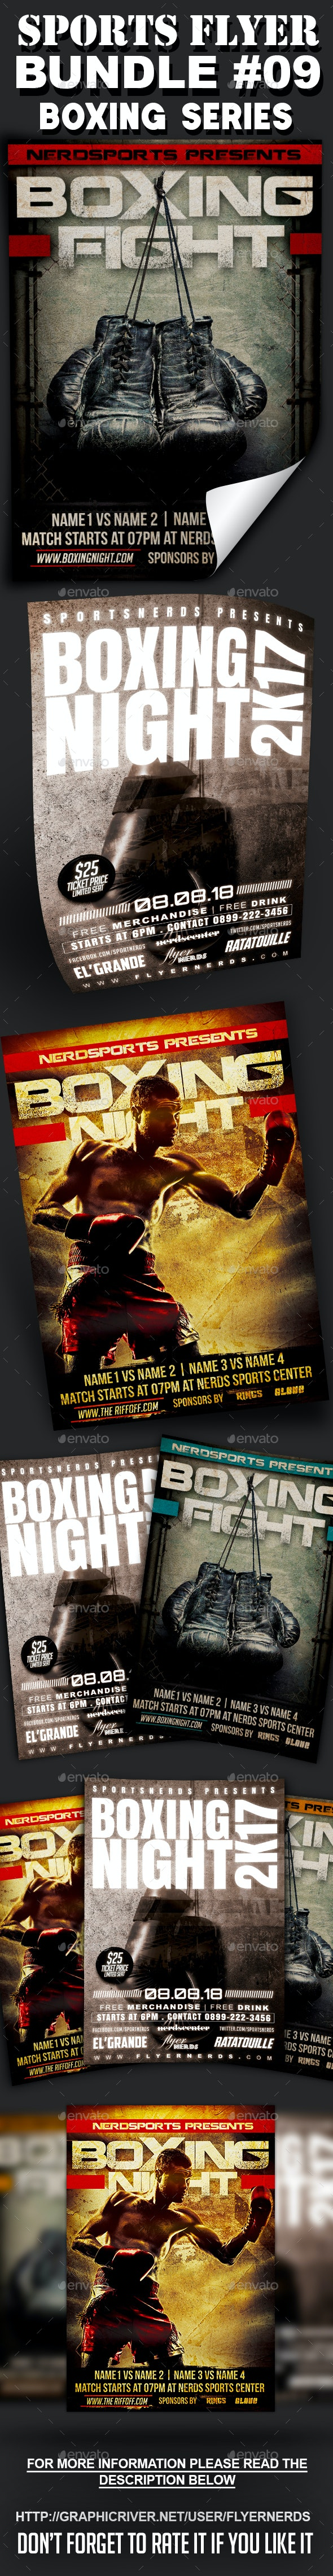 Sports Flyer Bundle 09 Boxing Series - Sports Events